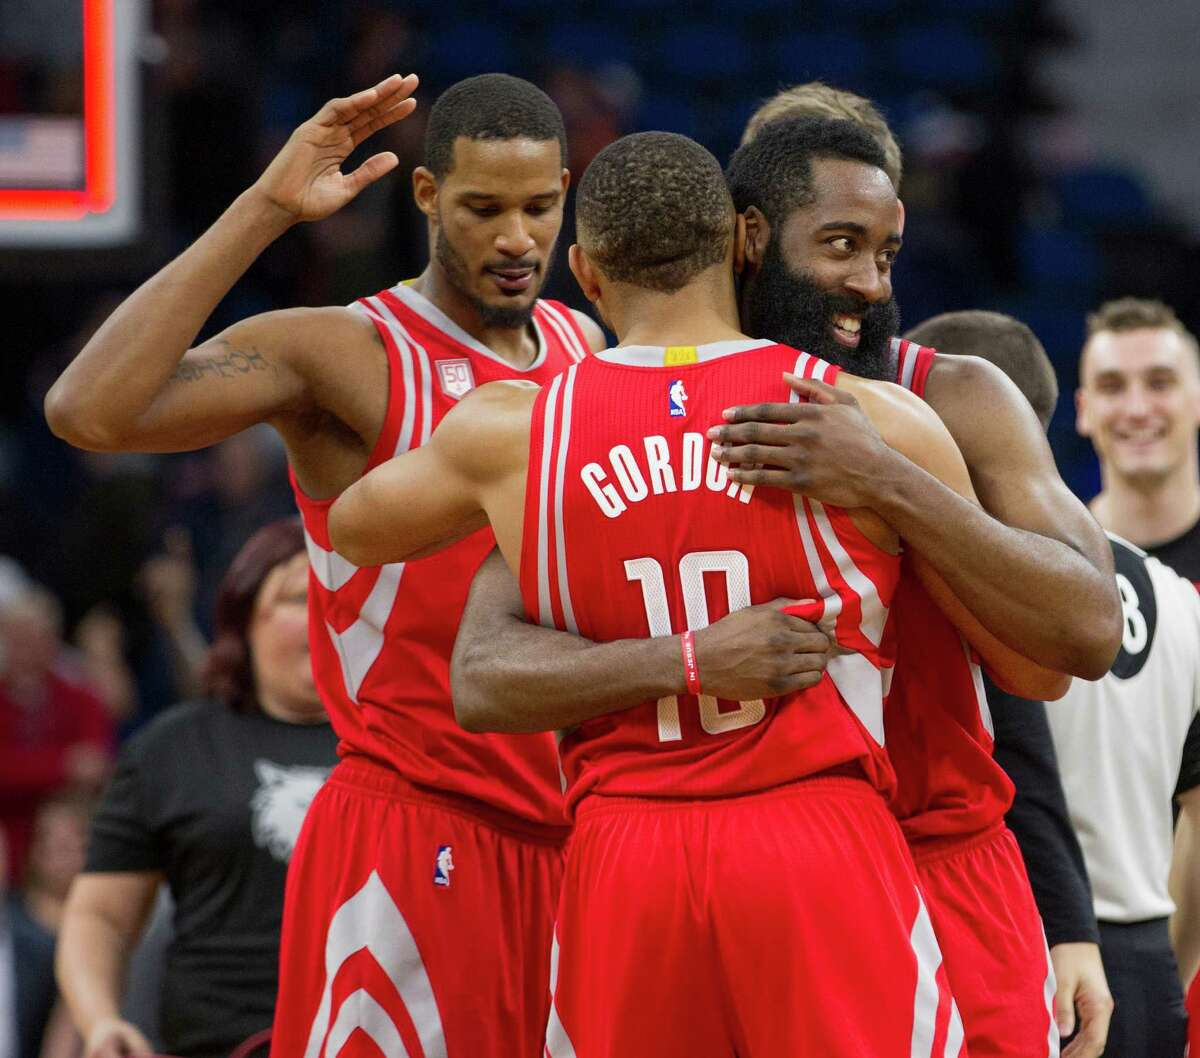 Houston Rockets guard James Harden, right, and teammates Eric Gordon (10) and Trevor Ariza, left, celebrate their 111-109 overtime win over the Minnesota Timberwolves during an NBA basketball game, Saturday, Dec. 17, 2016, in Minneapolis. (AP Photo/Paul Battaglia)